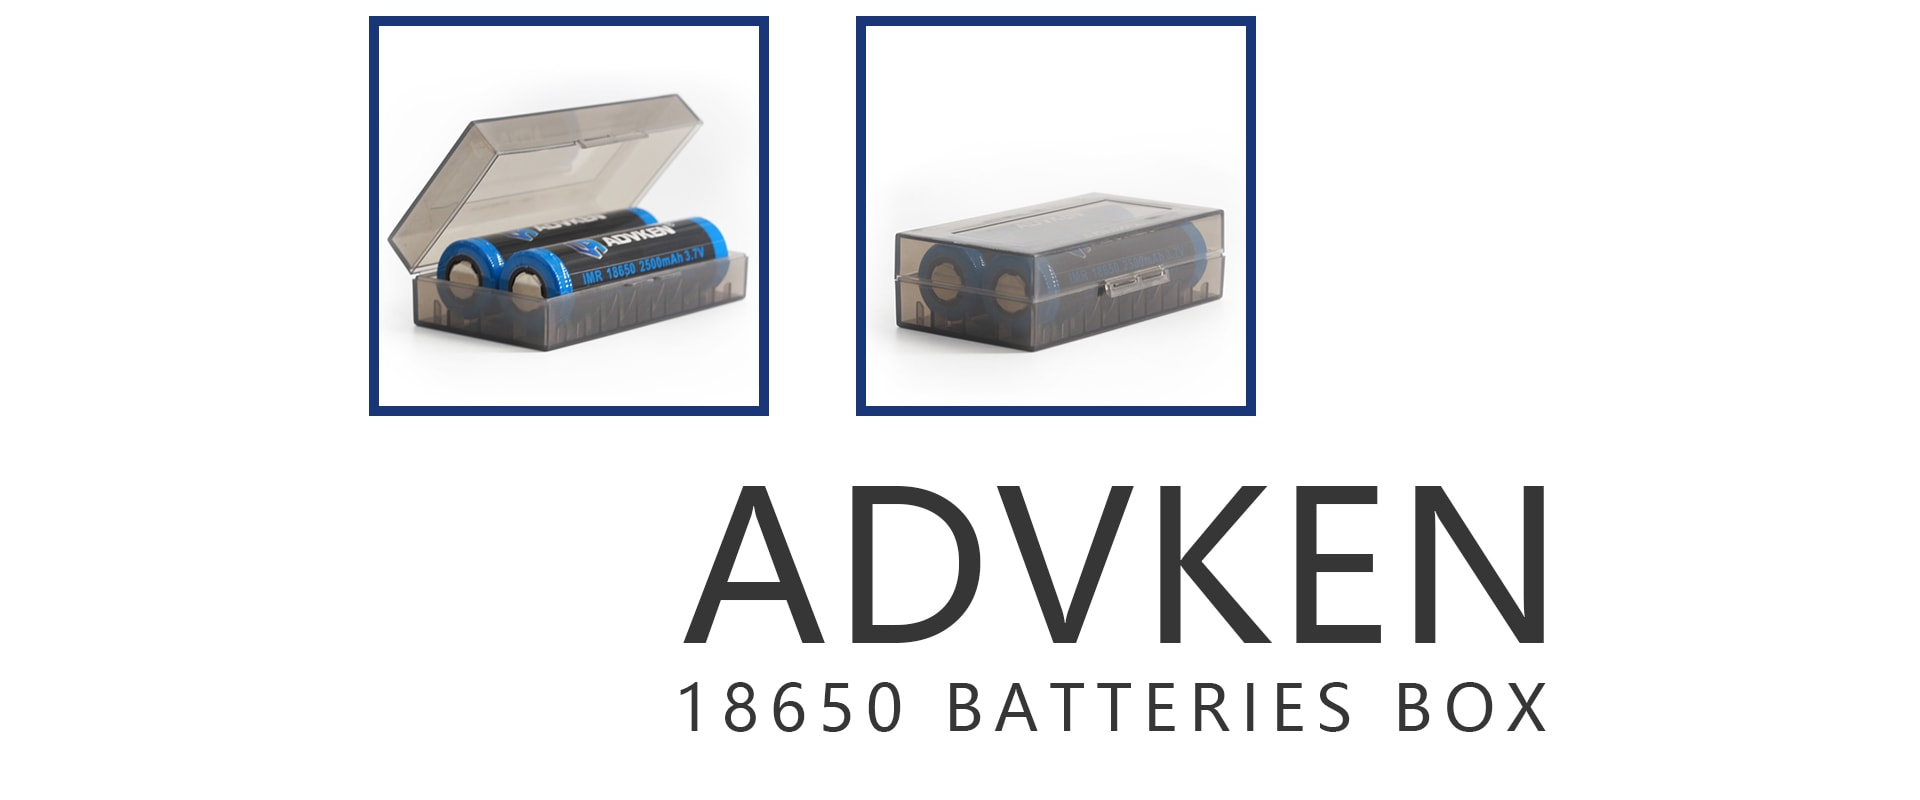 advken 18650 battery box 2 pc